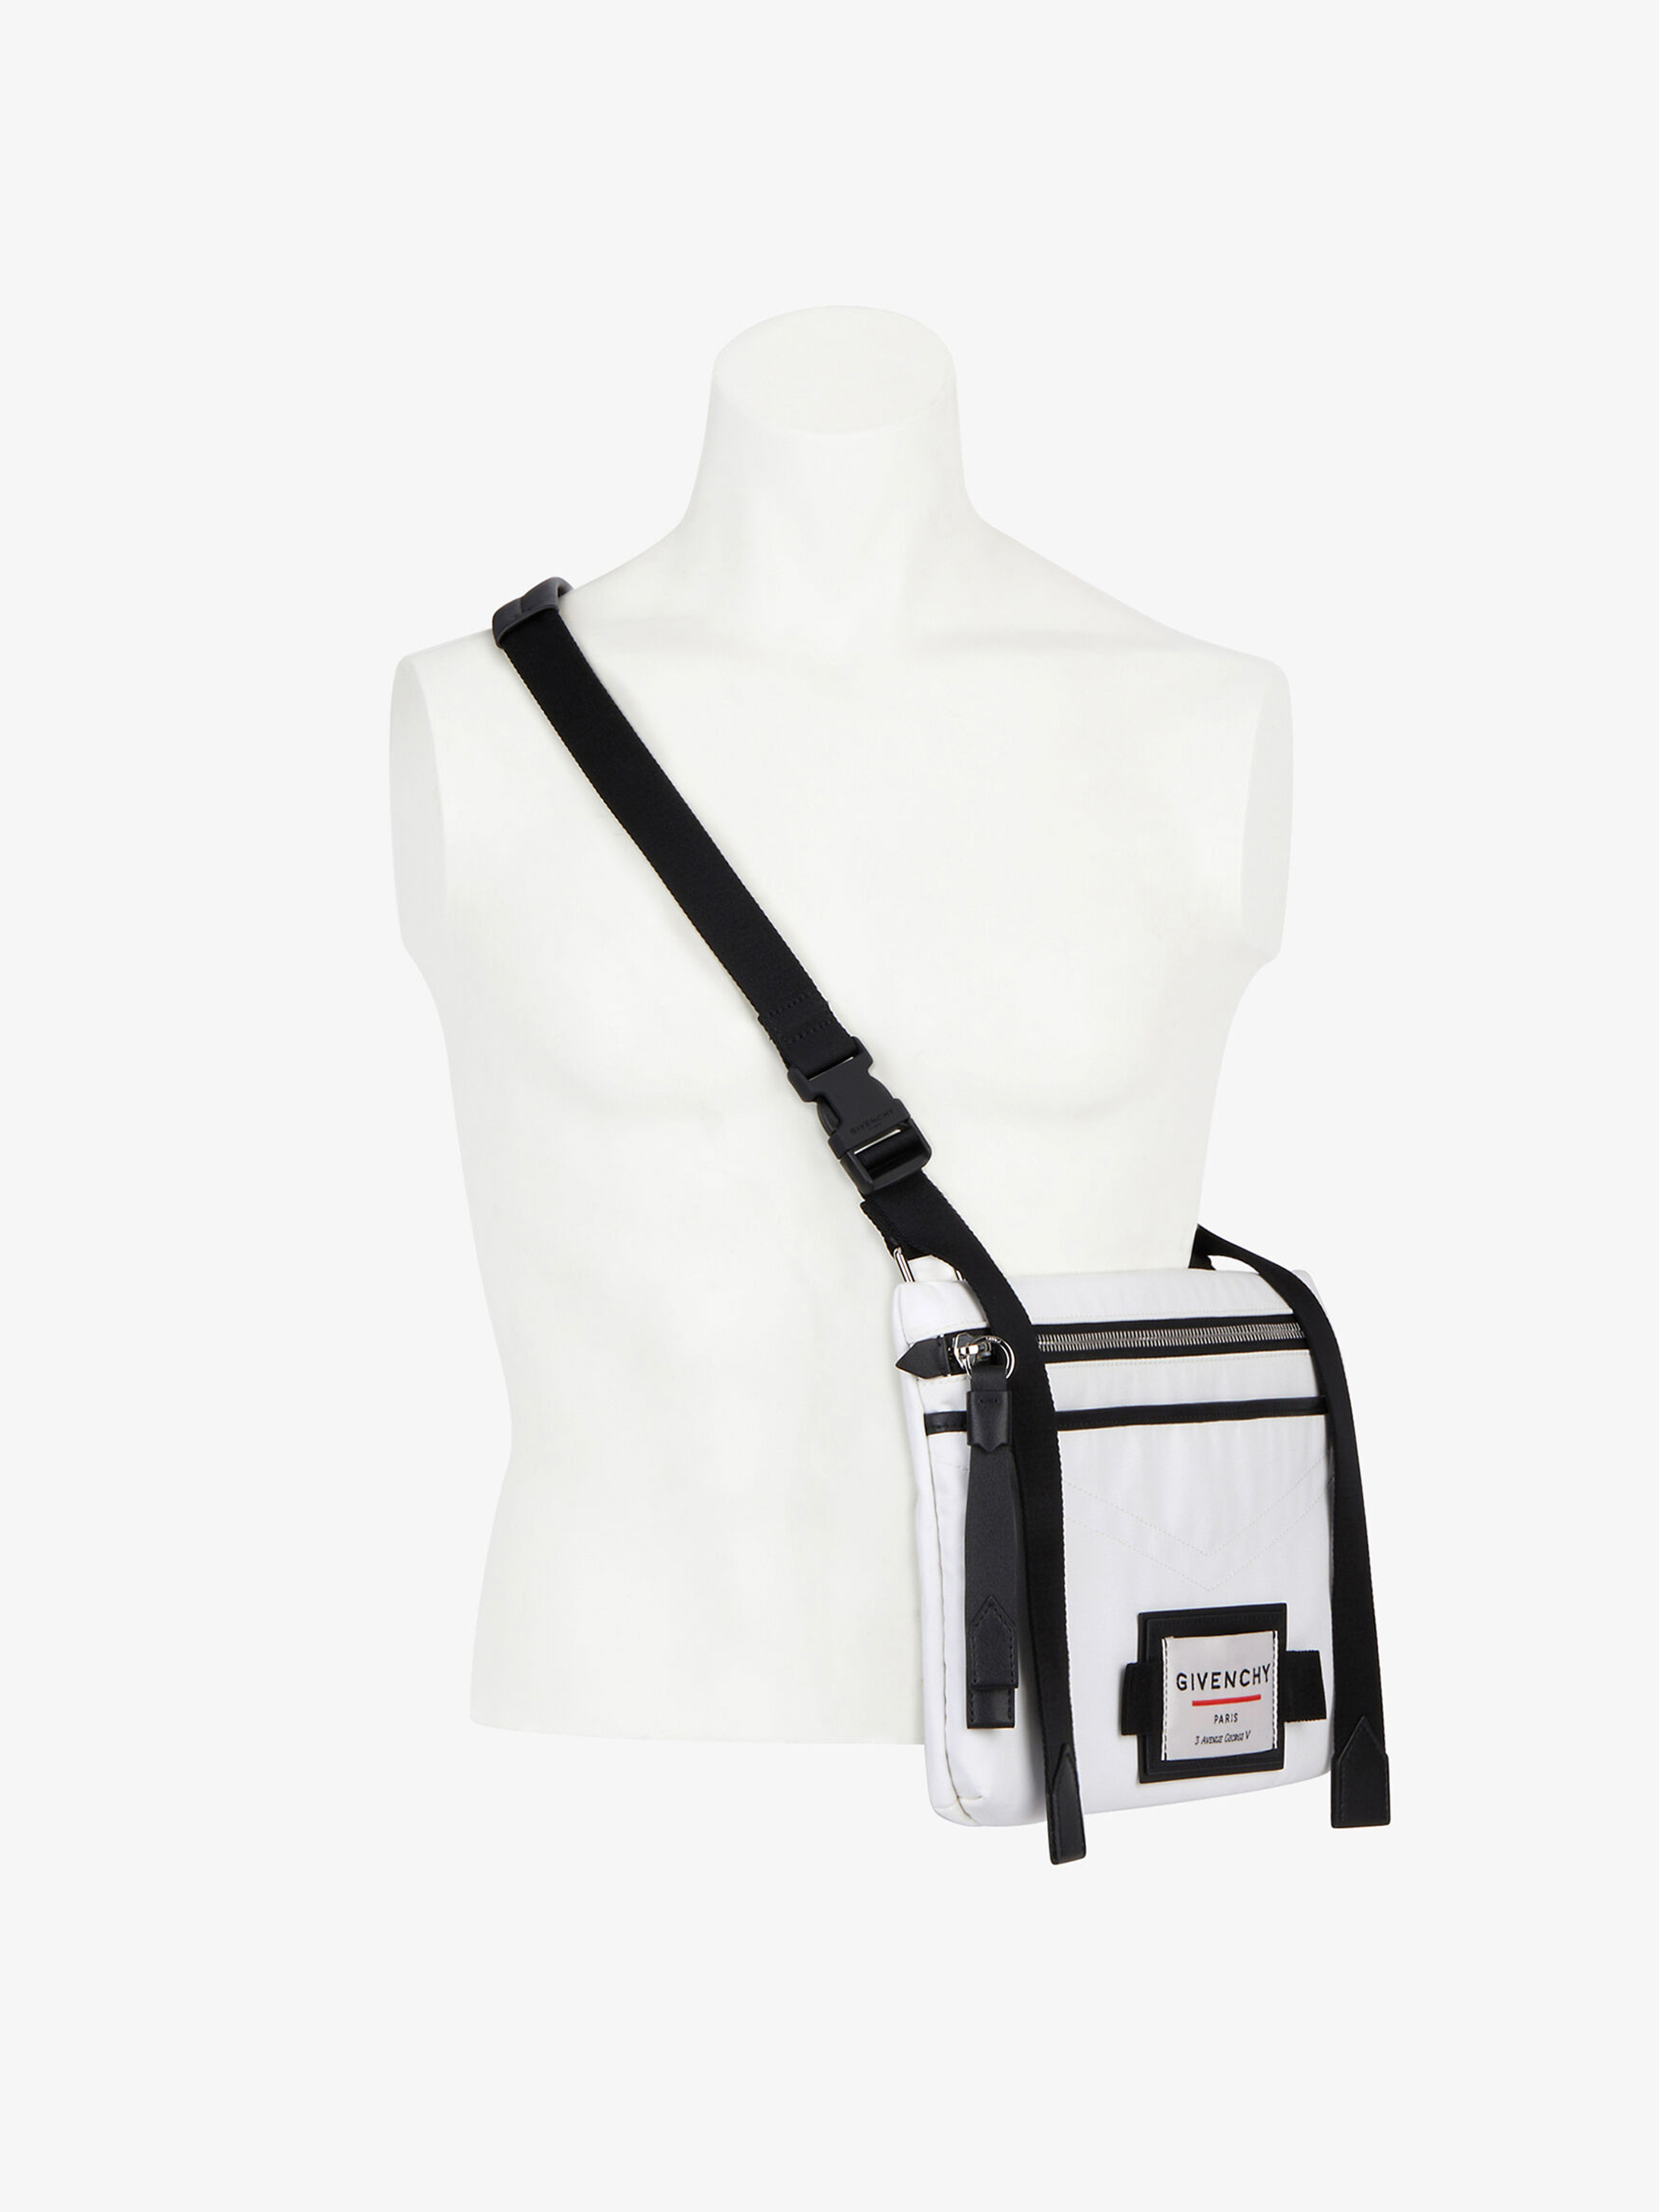 GIVENCHY DOWNTOWN flat cross body bag in nylon